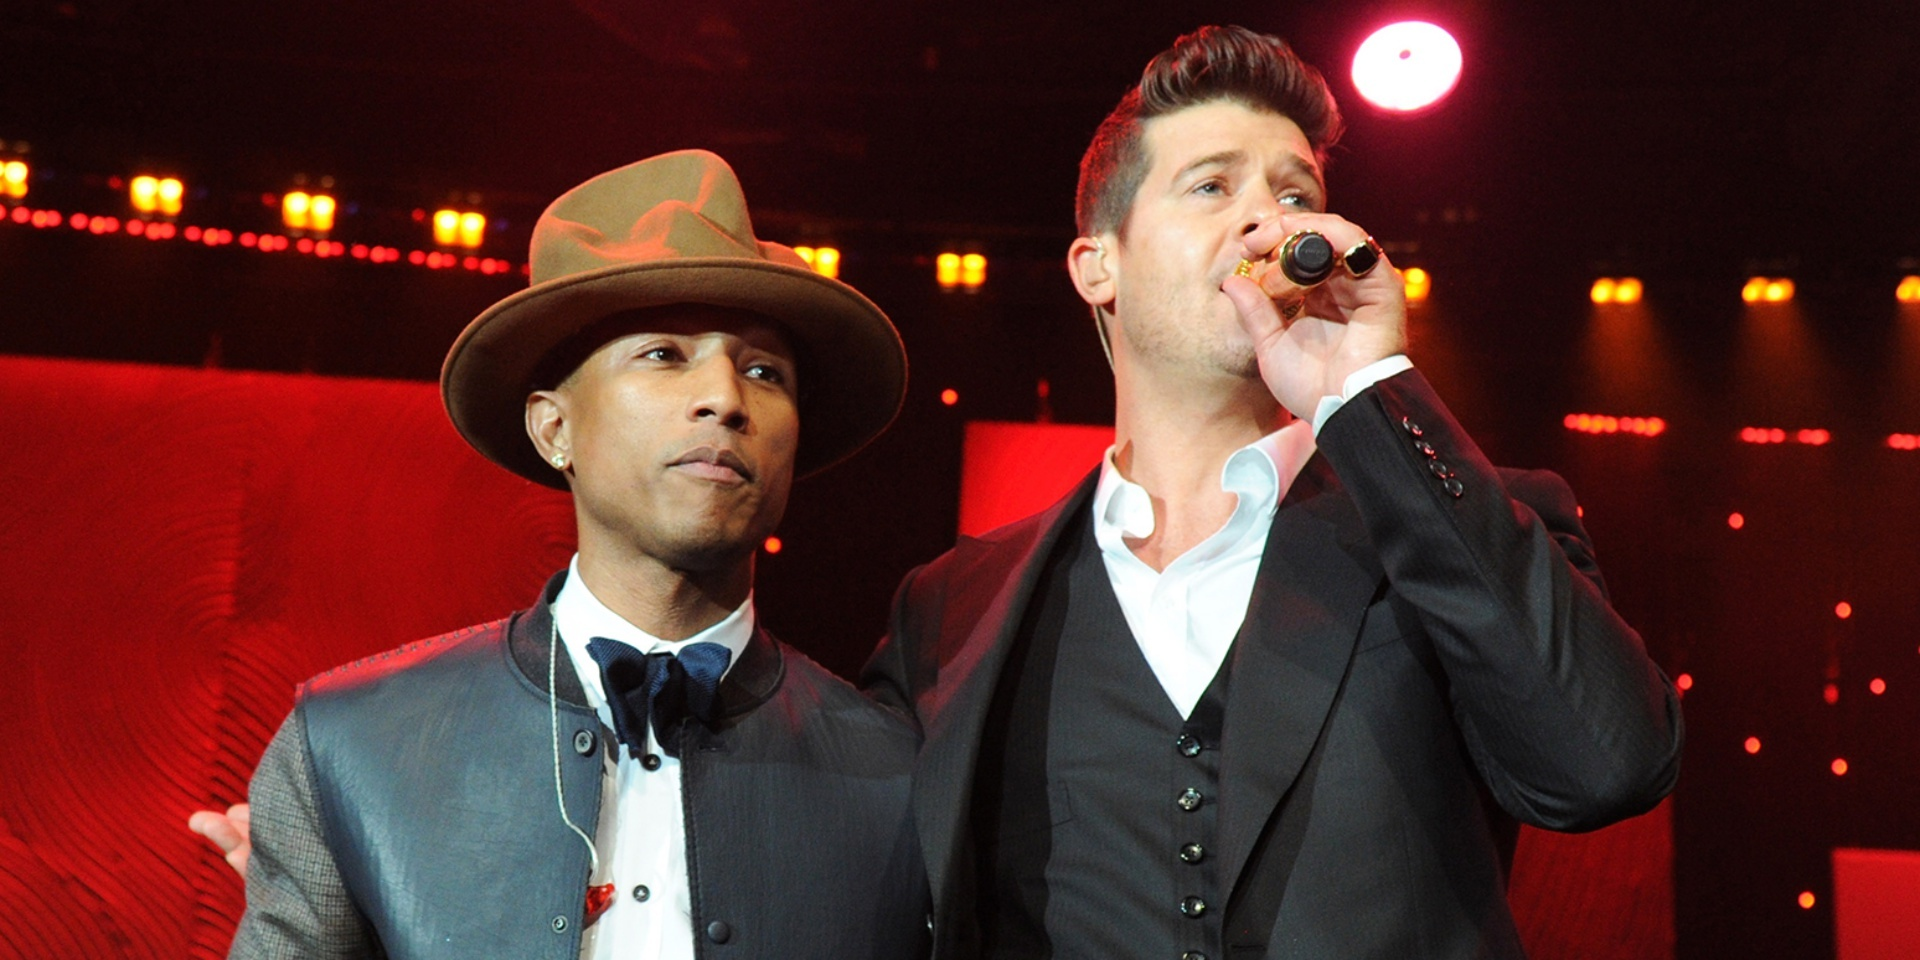 Robin Thicke and Pharrell Williams' 'Blurred Lines' copyright lawsuit concludes in a $5 million payout